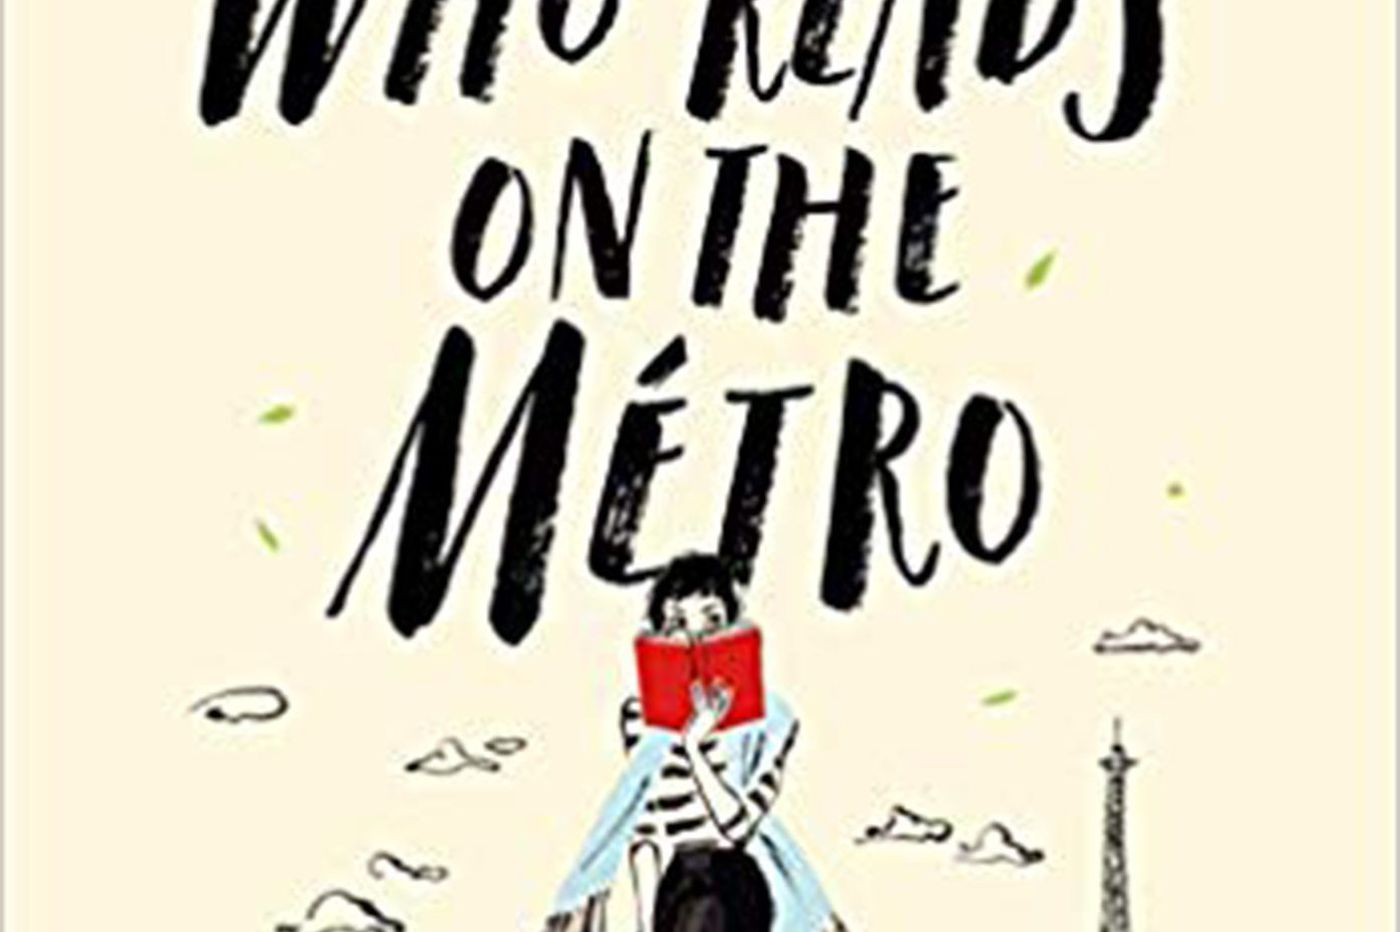 'The Girl Who Reads on the Metro,' by Christine Feret-Fleury | Book review